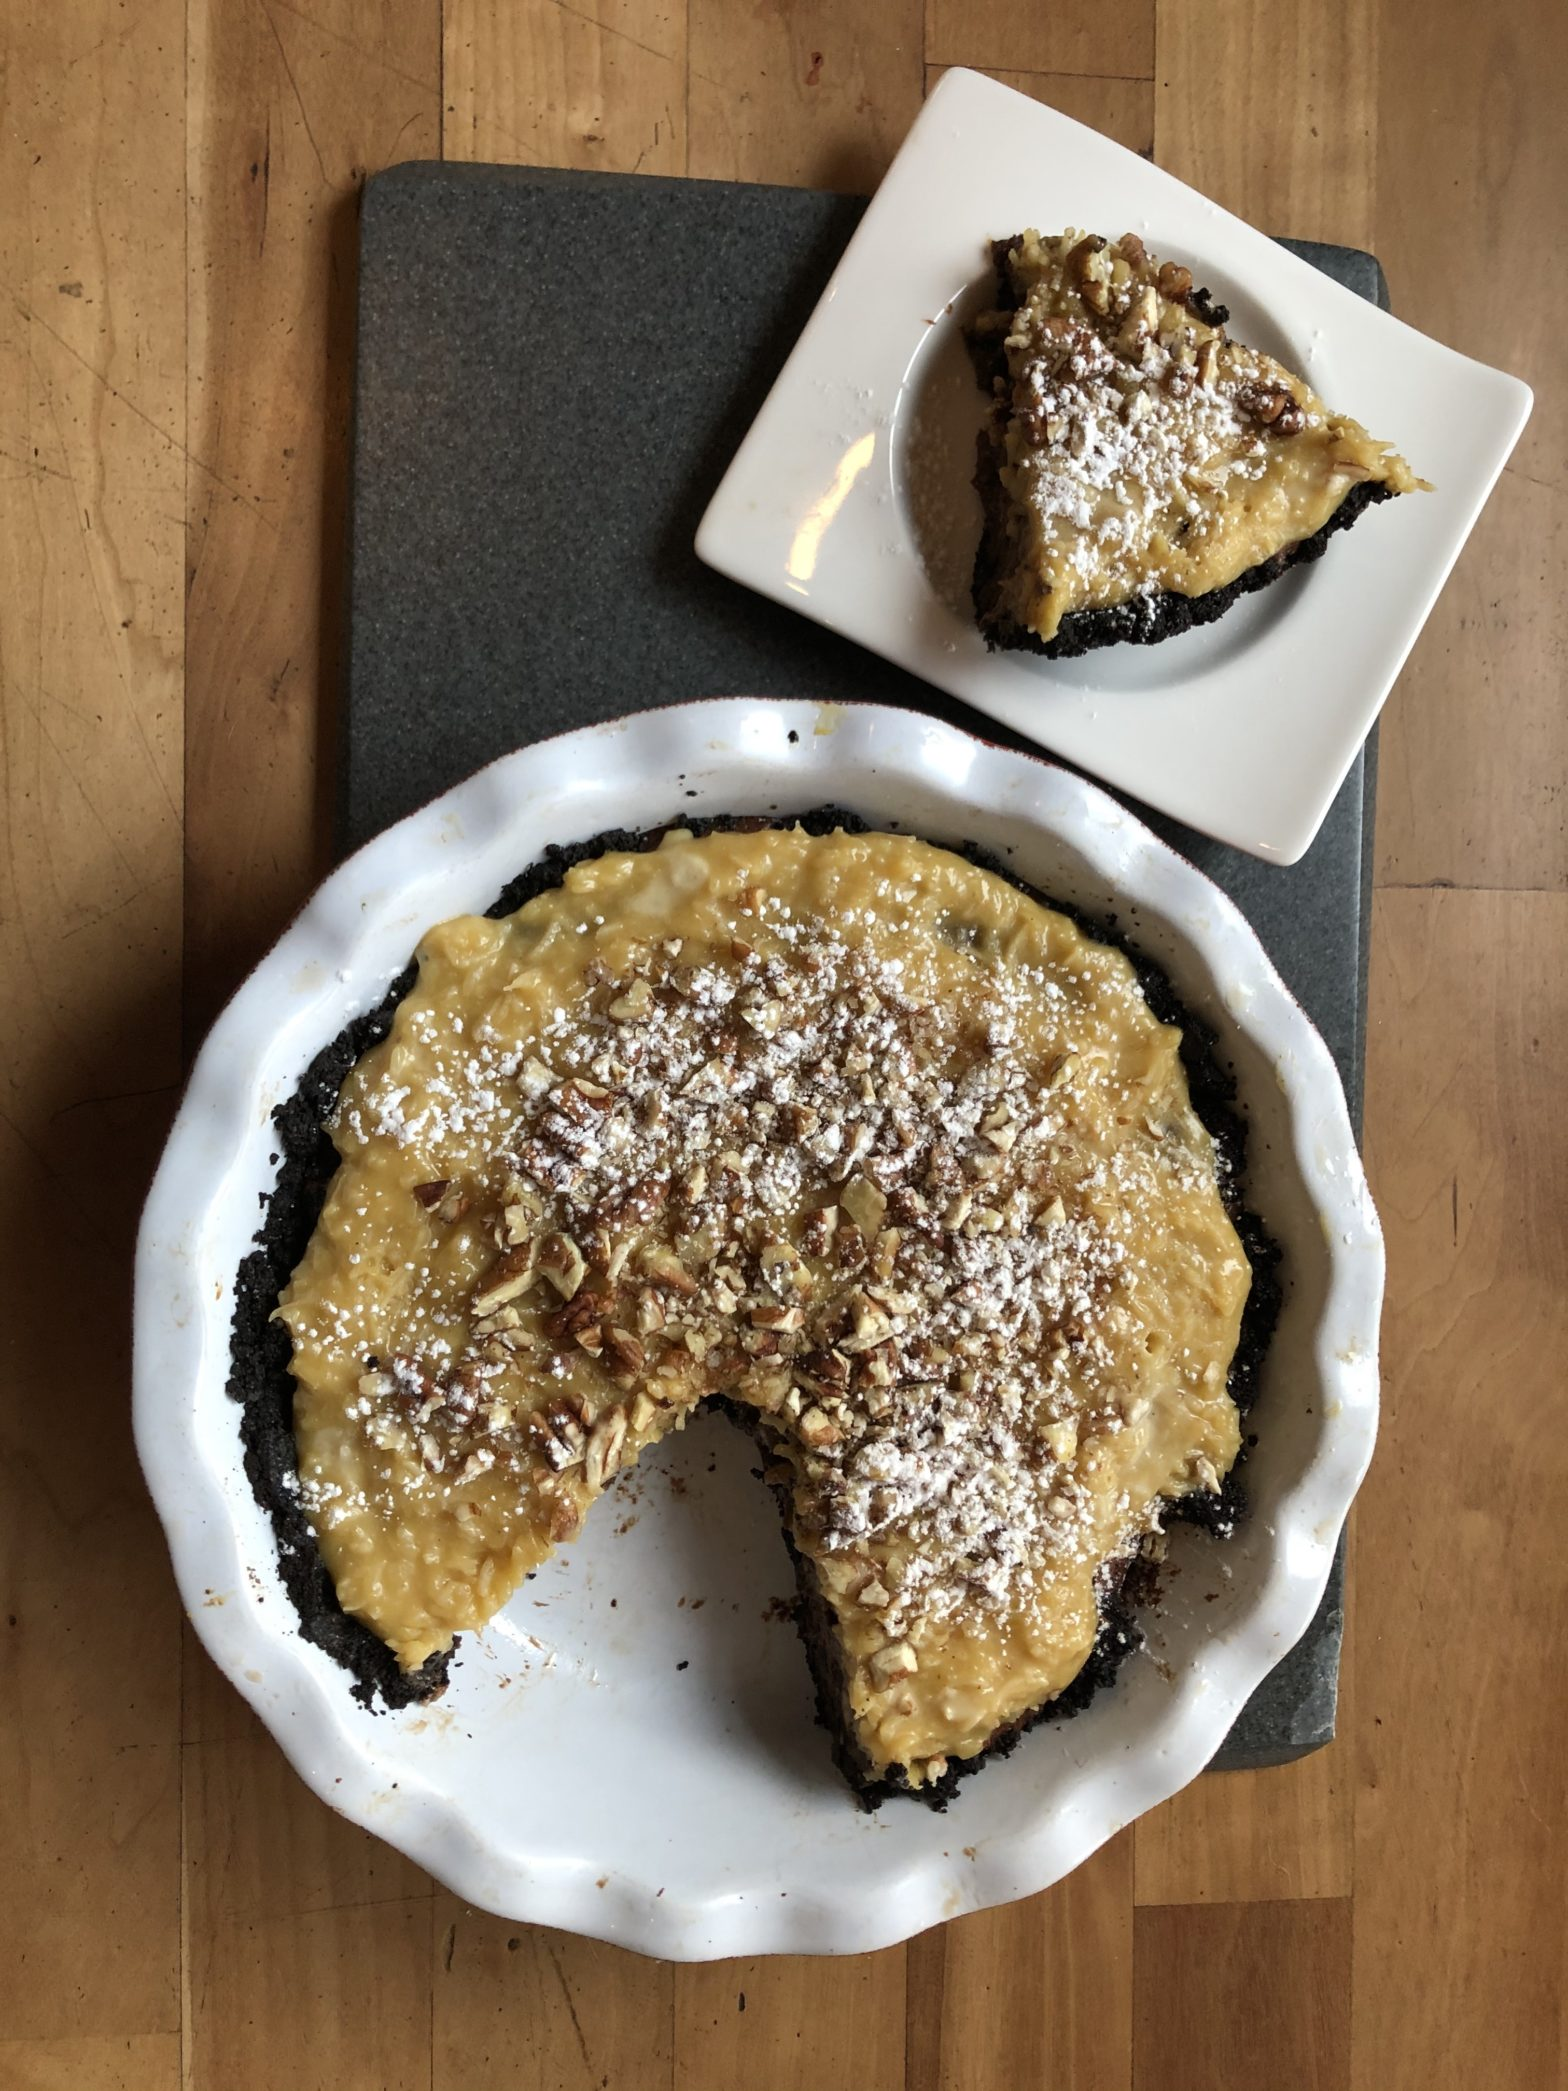 Chocolate Pie with Pecans and Coconut